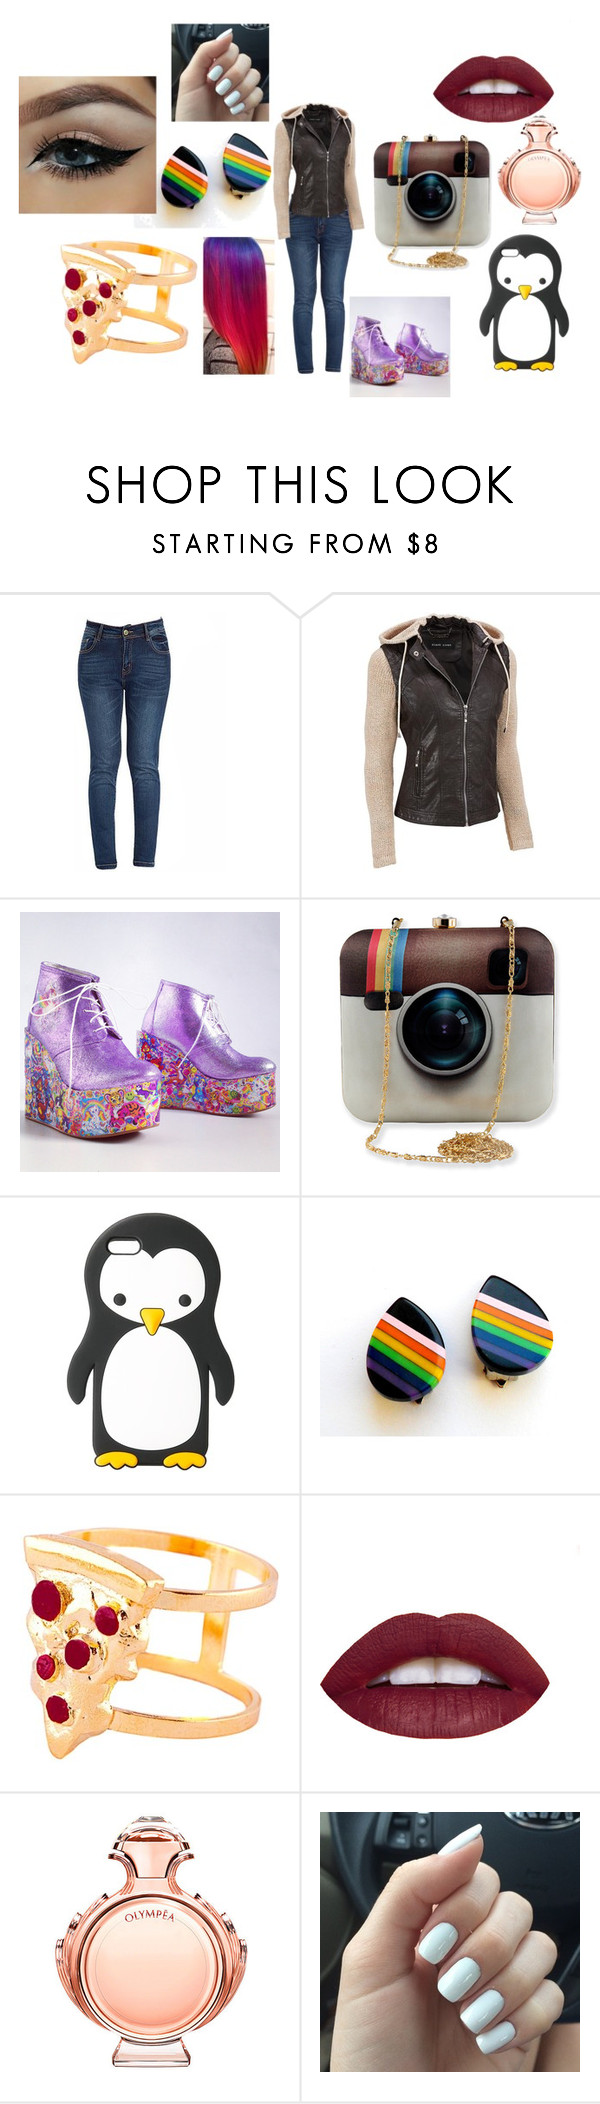 """Social Media"" by alliephil ❤ liked on Polyvore featuring moda, MANGO, Glenda López y Paco Rabanne"